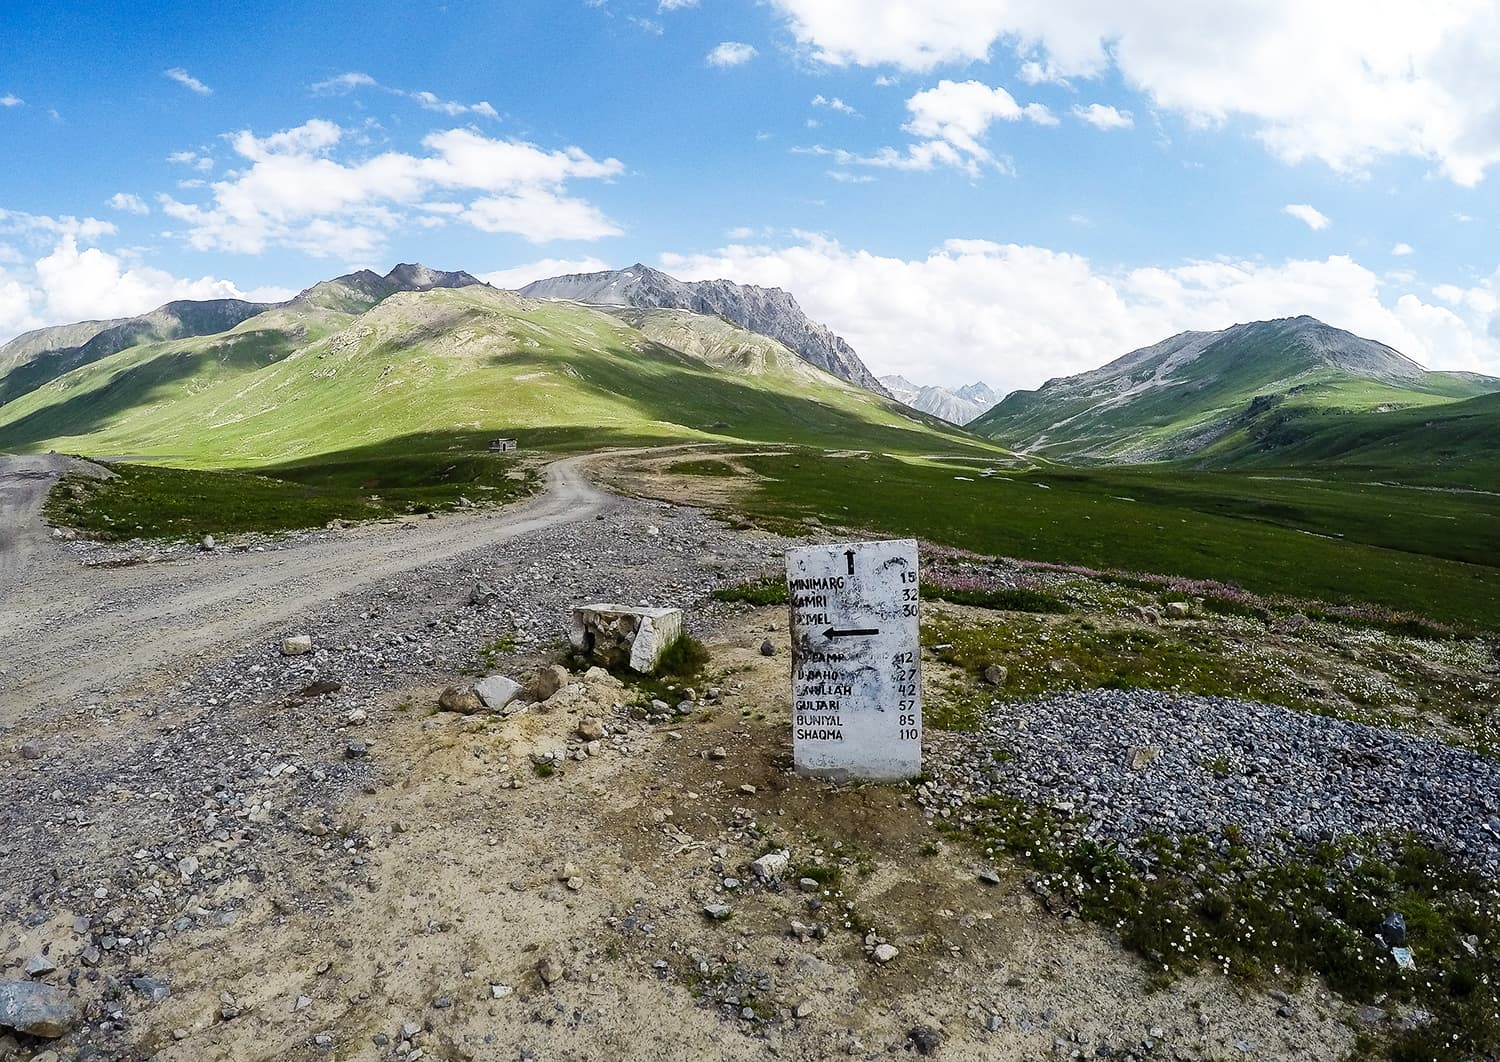 A milestone on the way to Minimarg.